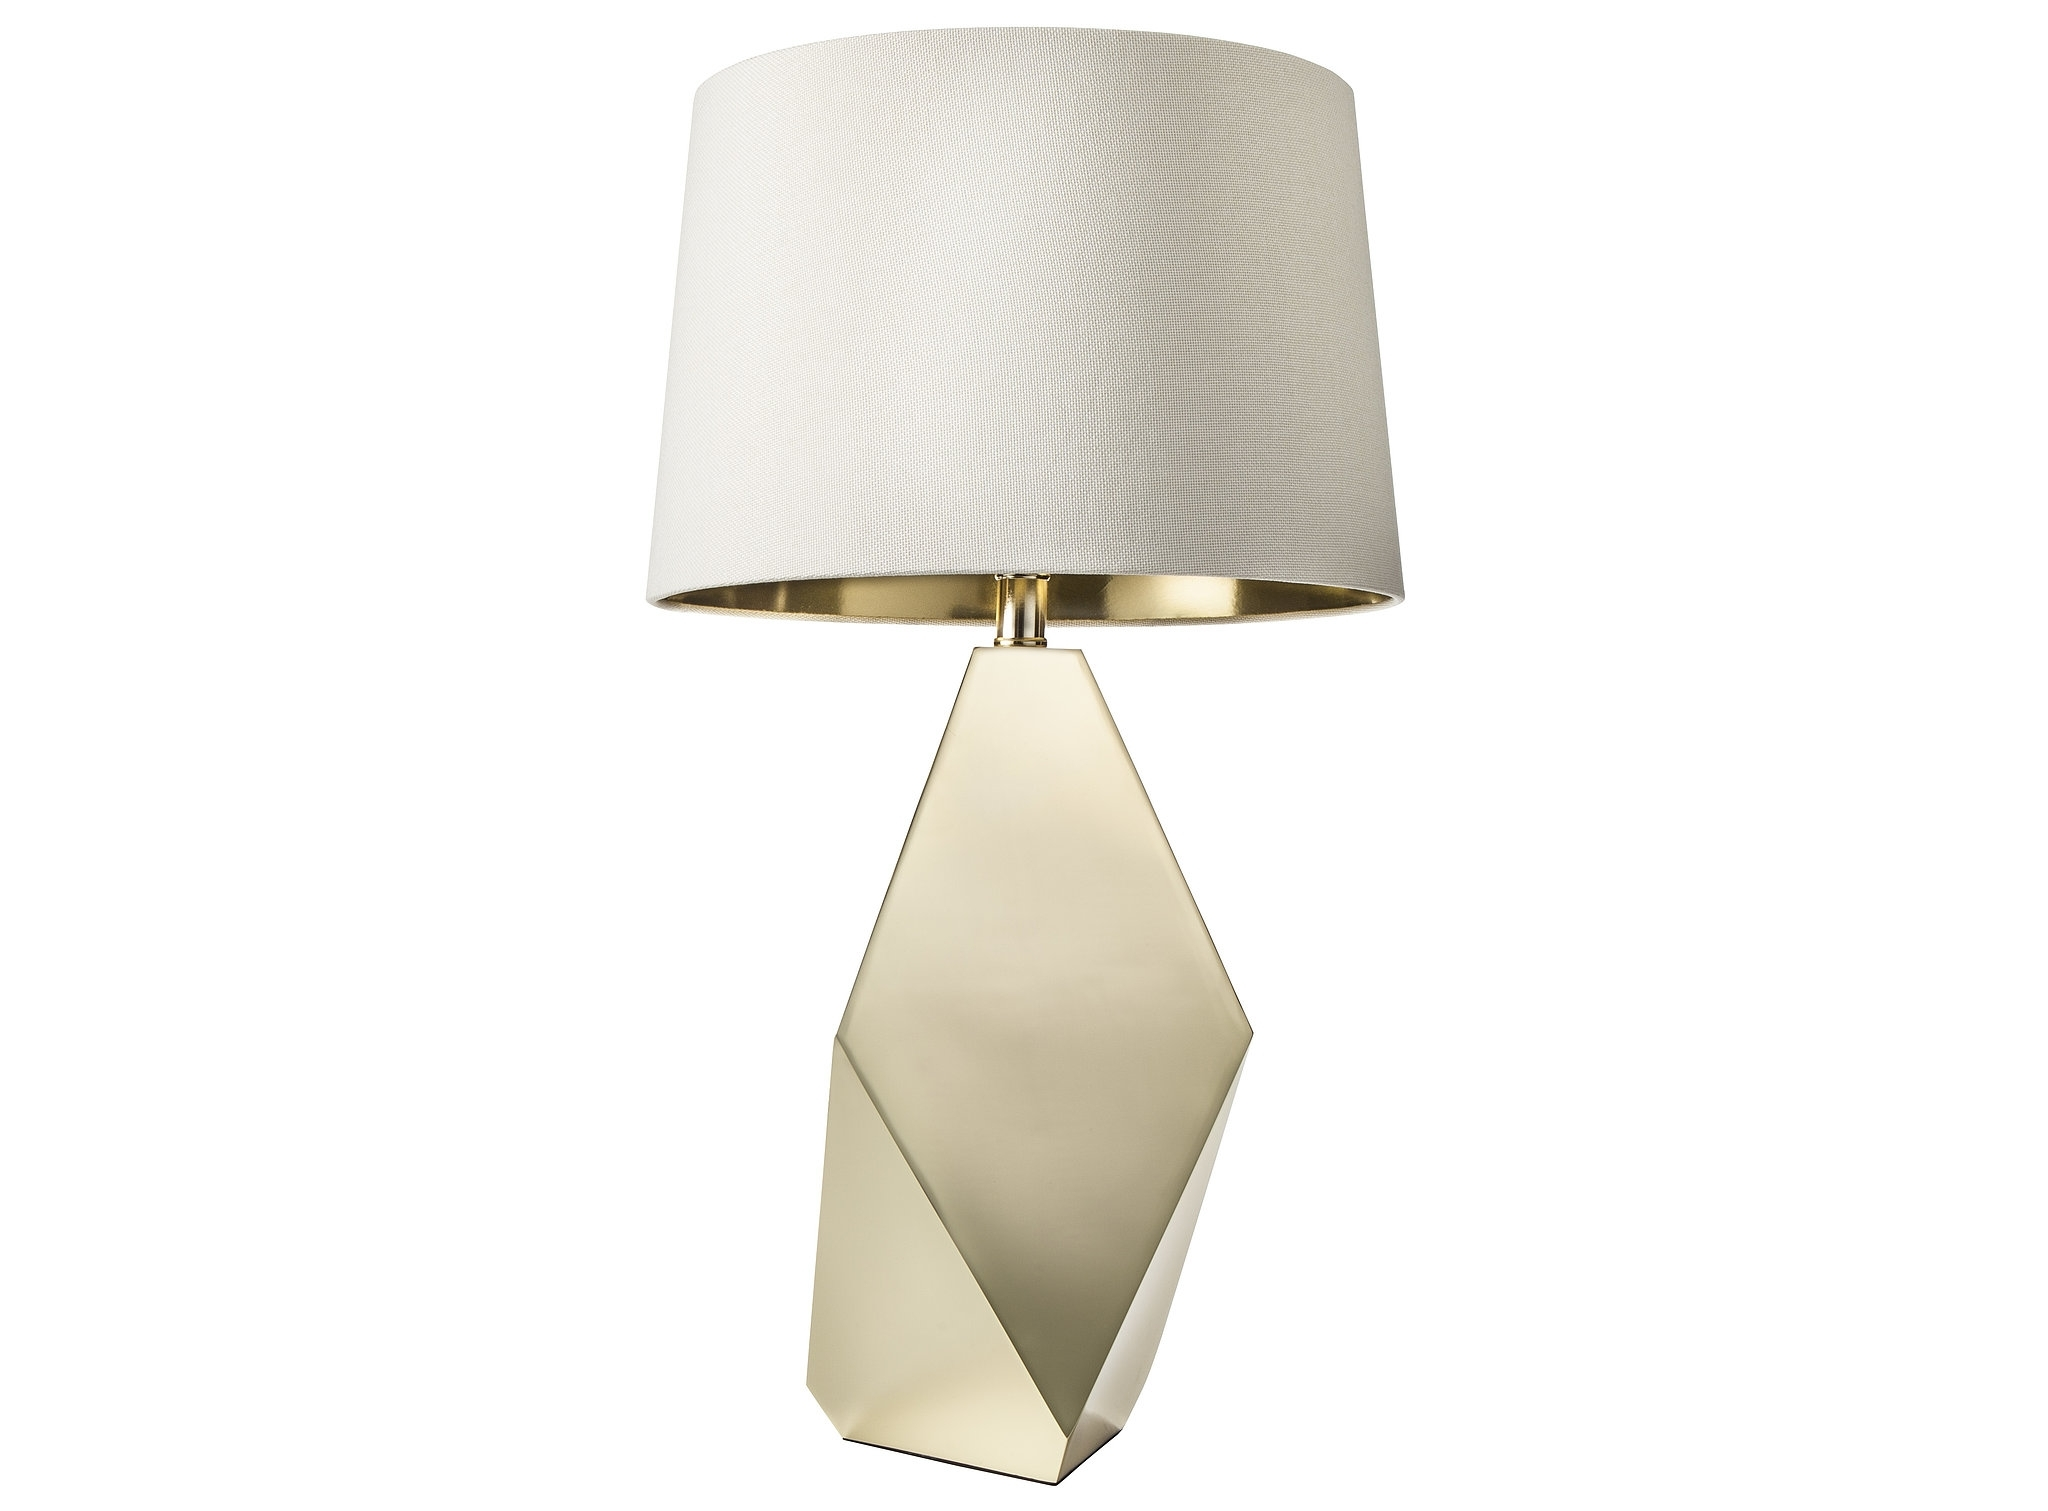 title | Living Room Lamps Target